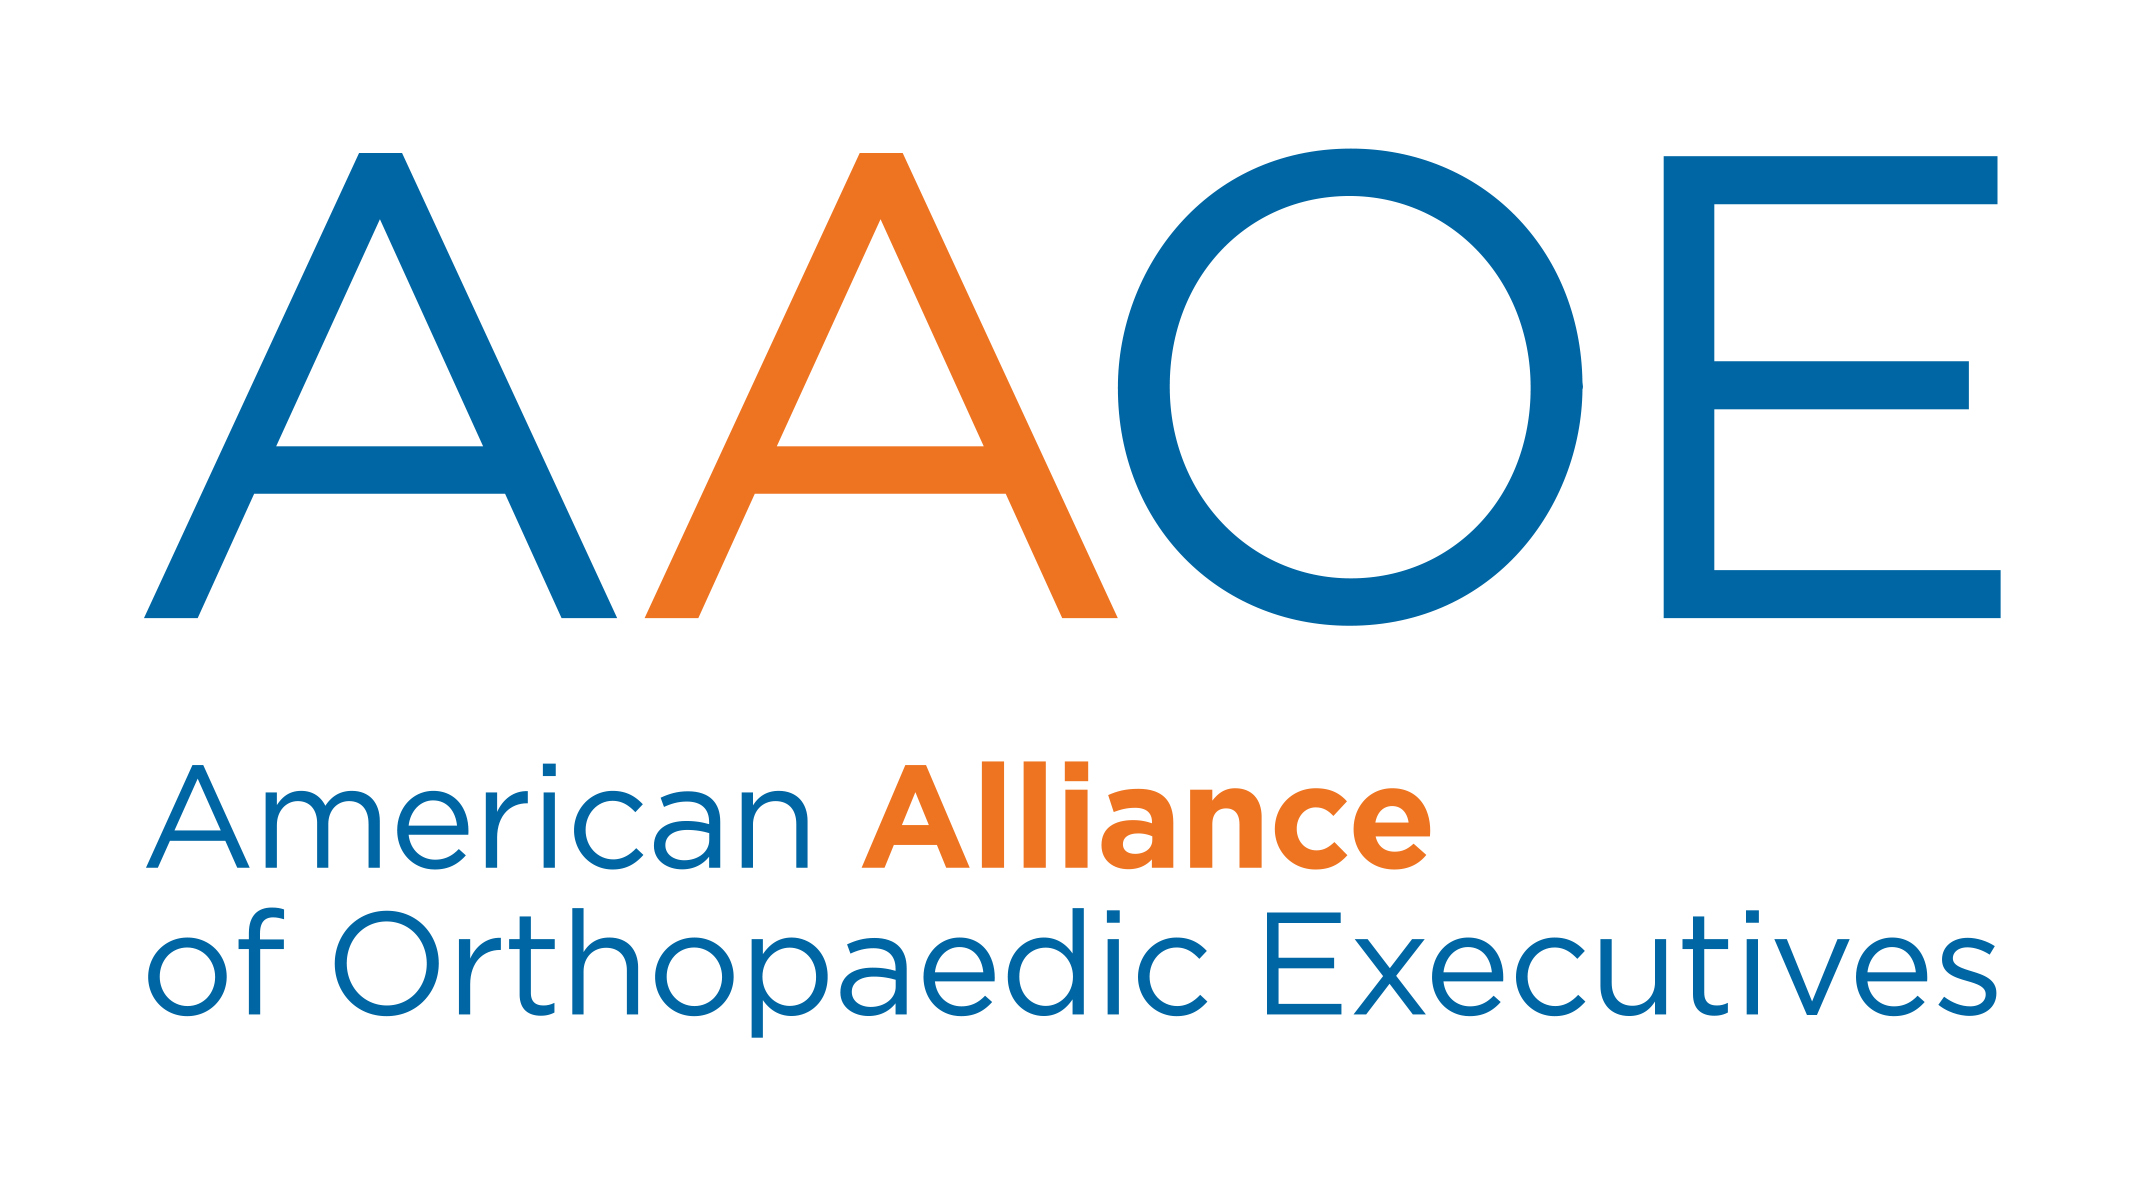 Recent Jobs - American Alliance of Orthopaedic Executives (AAOE)